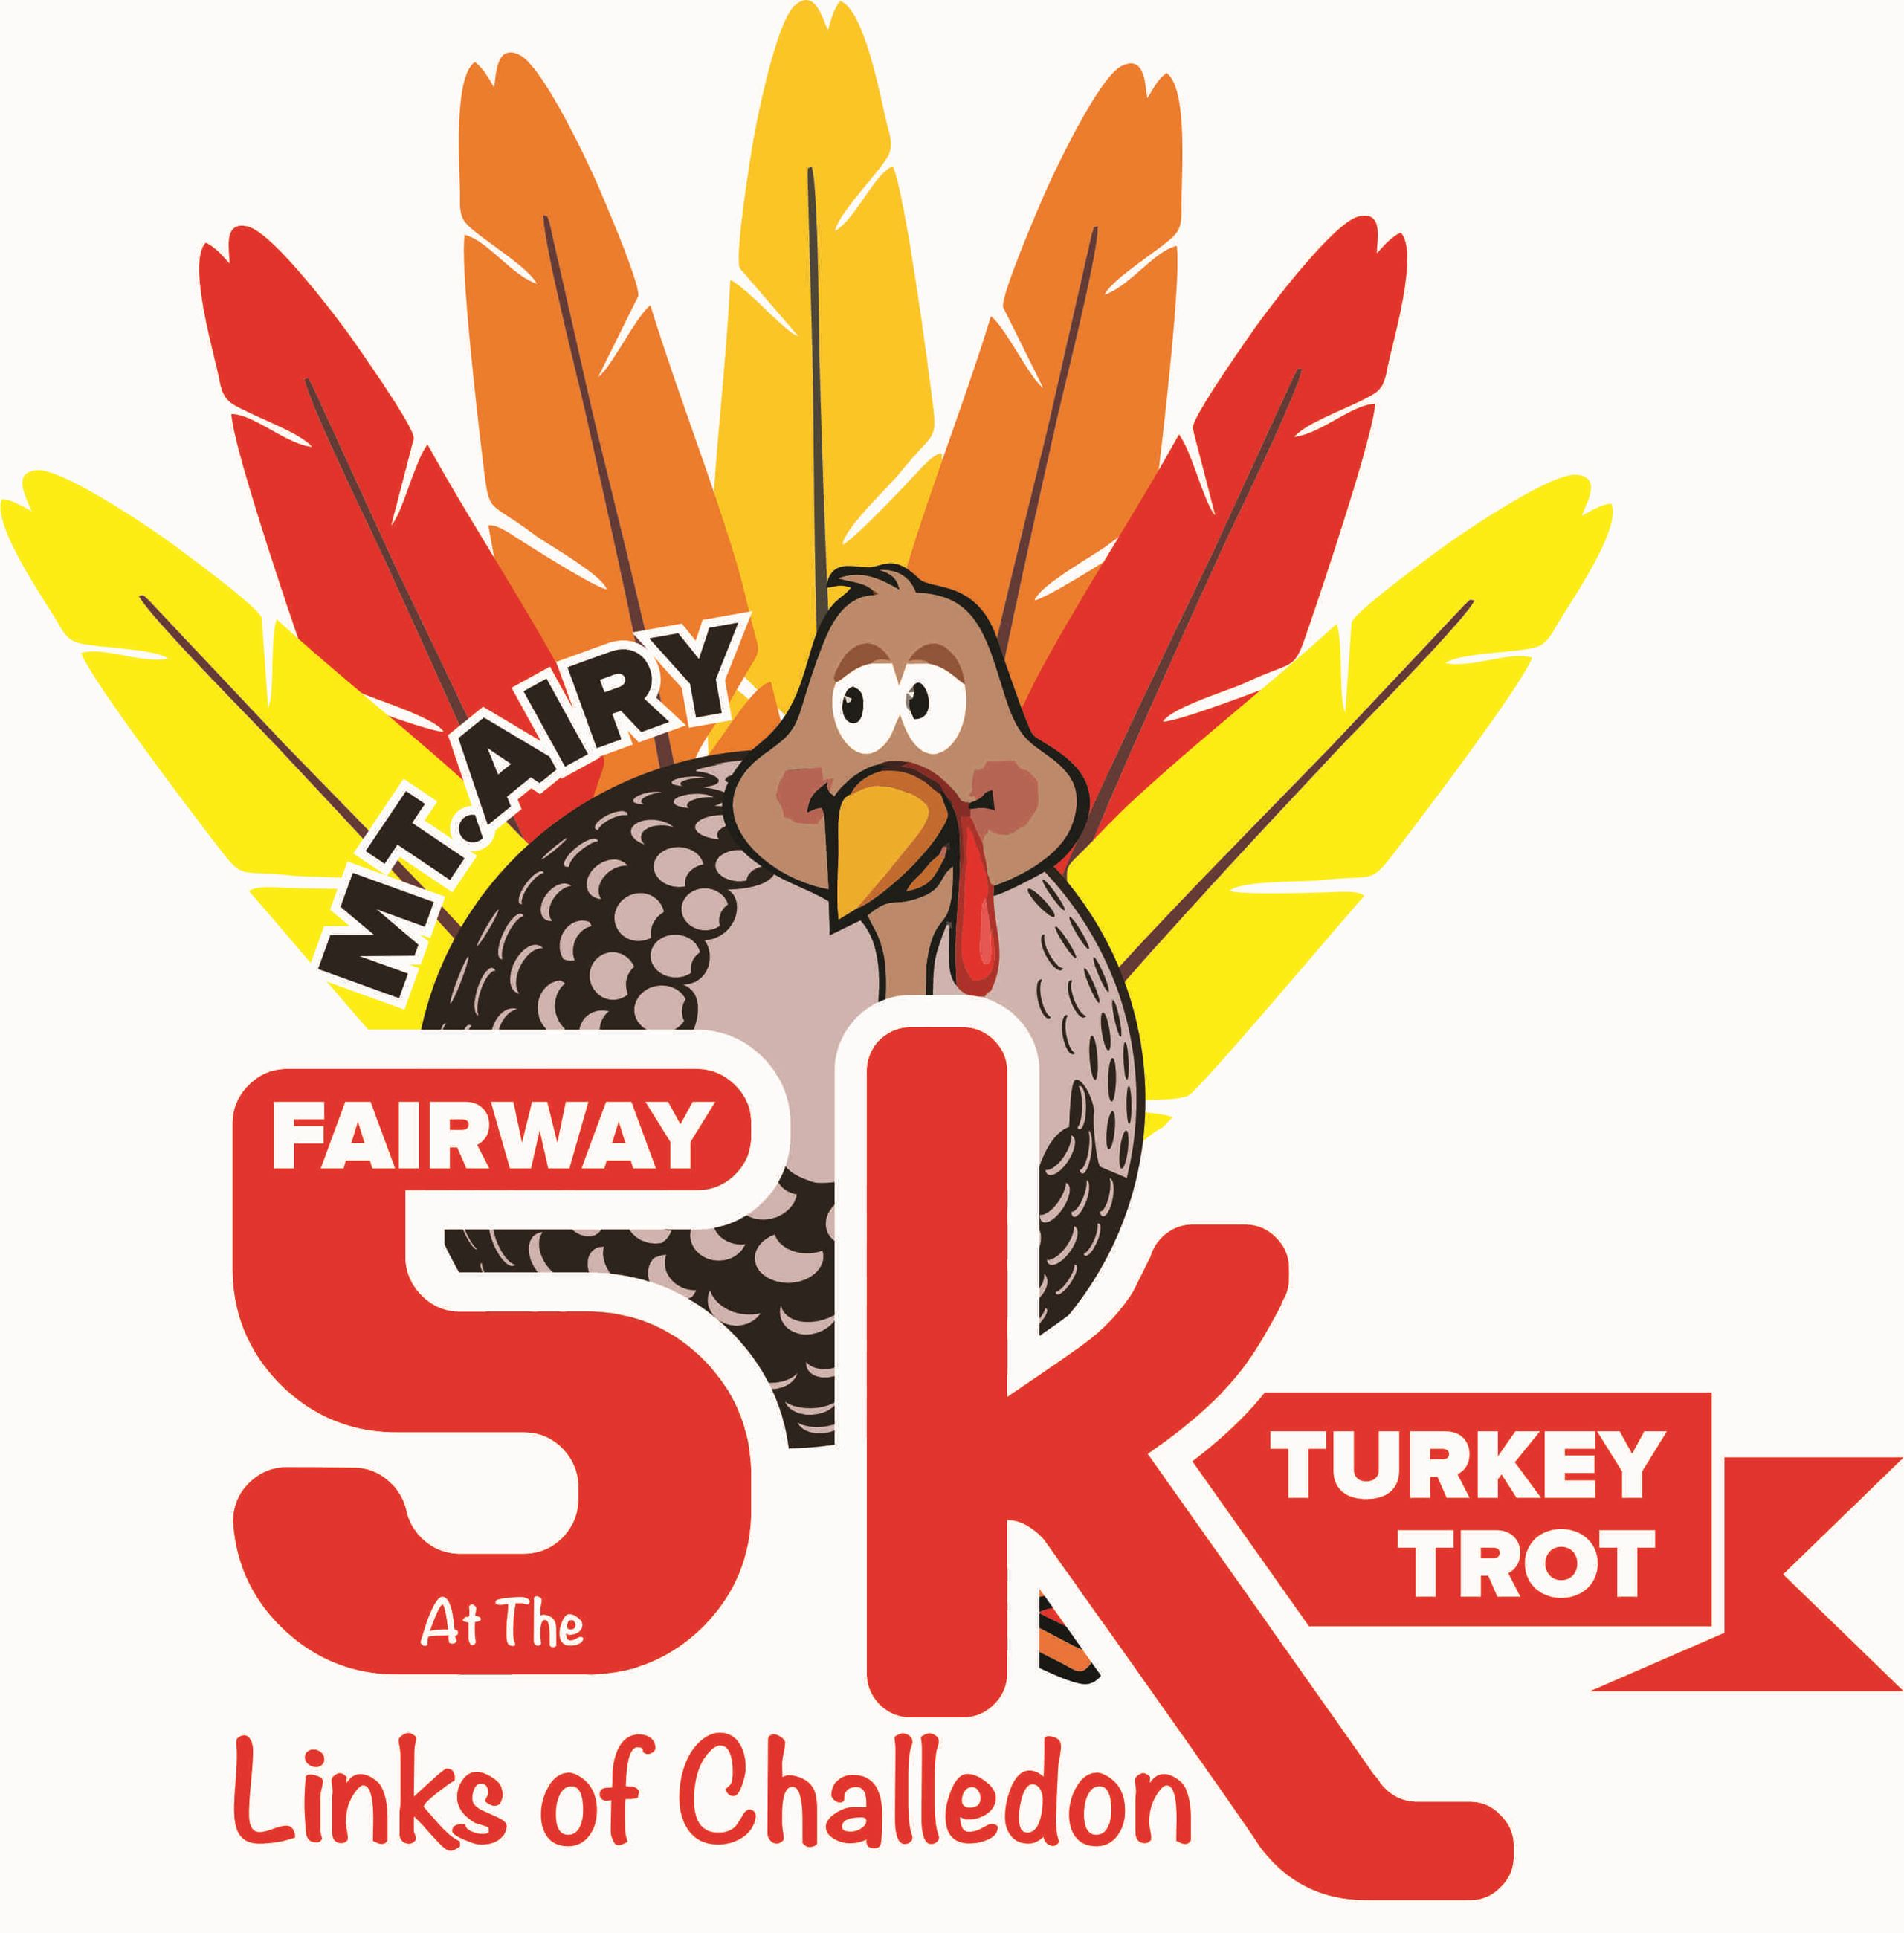 Fairway-5k-turkey-trot-v2